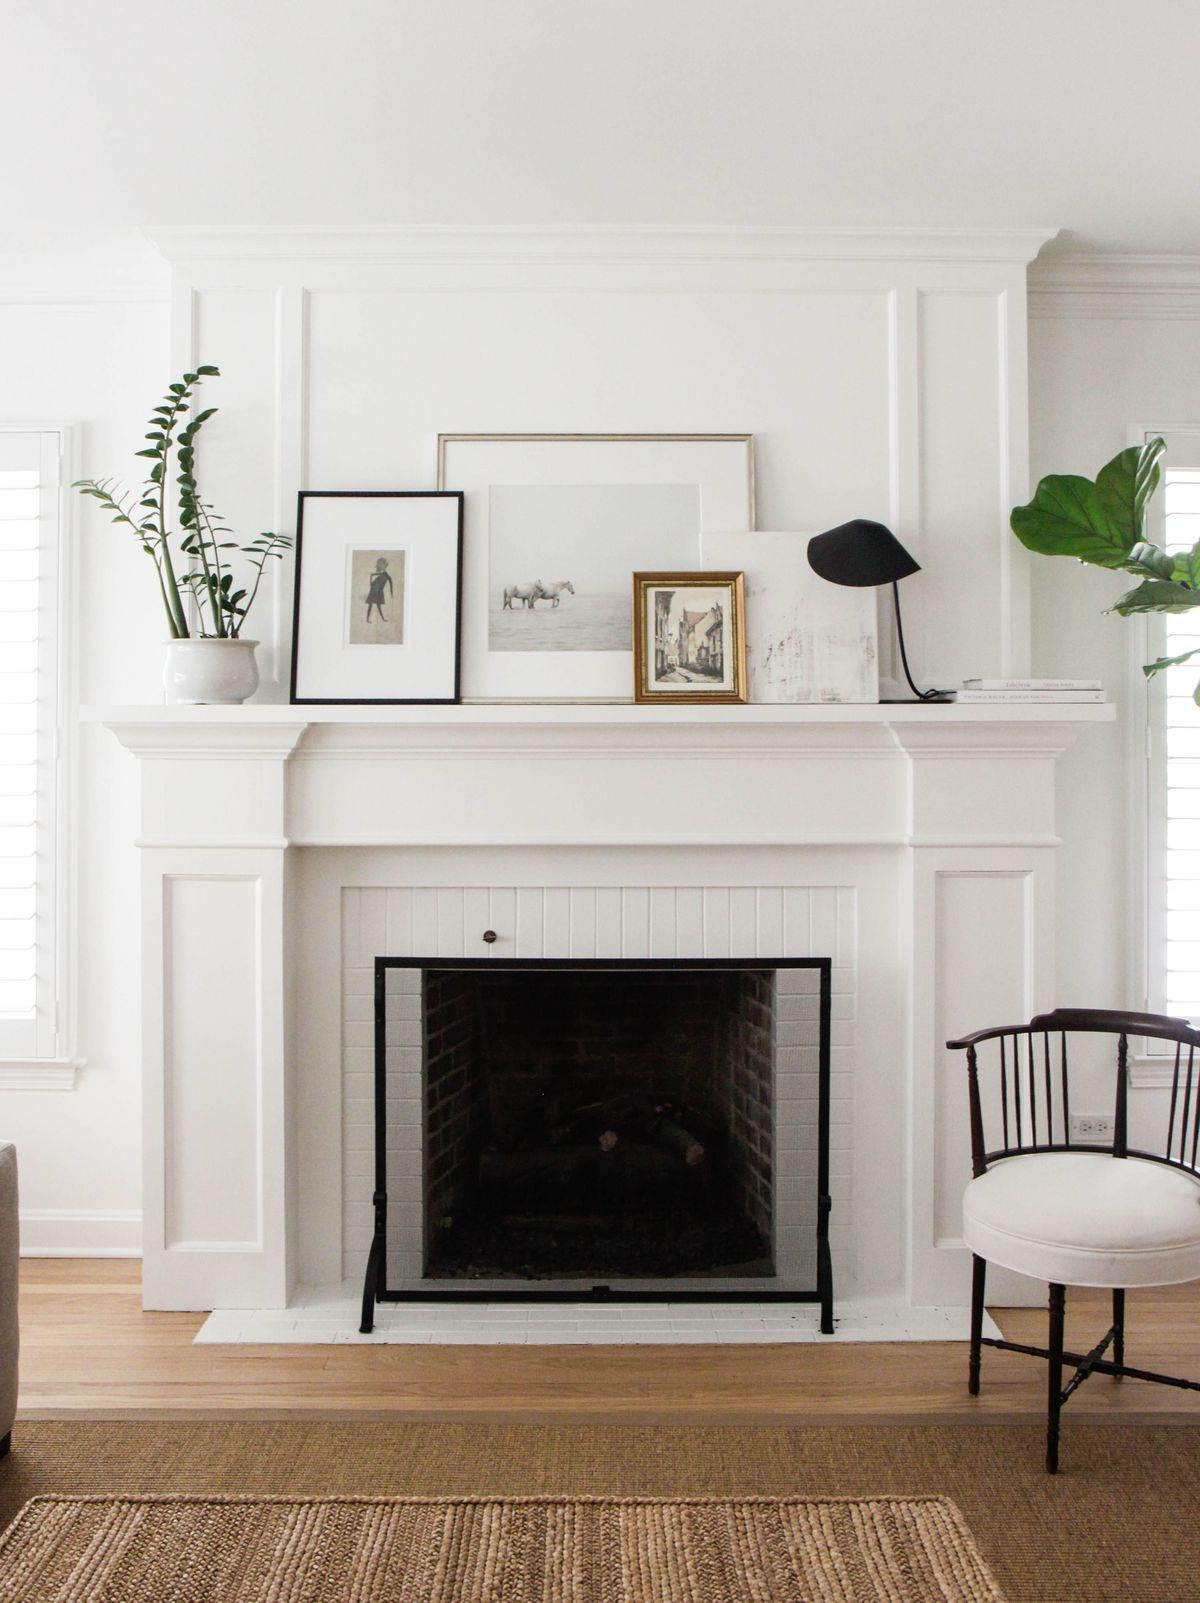 Try Leaning Framed Photographs With Some Fresh Greenery On The Fireplace Mantel For A Simple Spring Ready Look